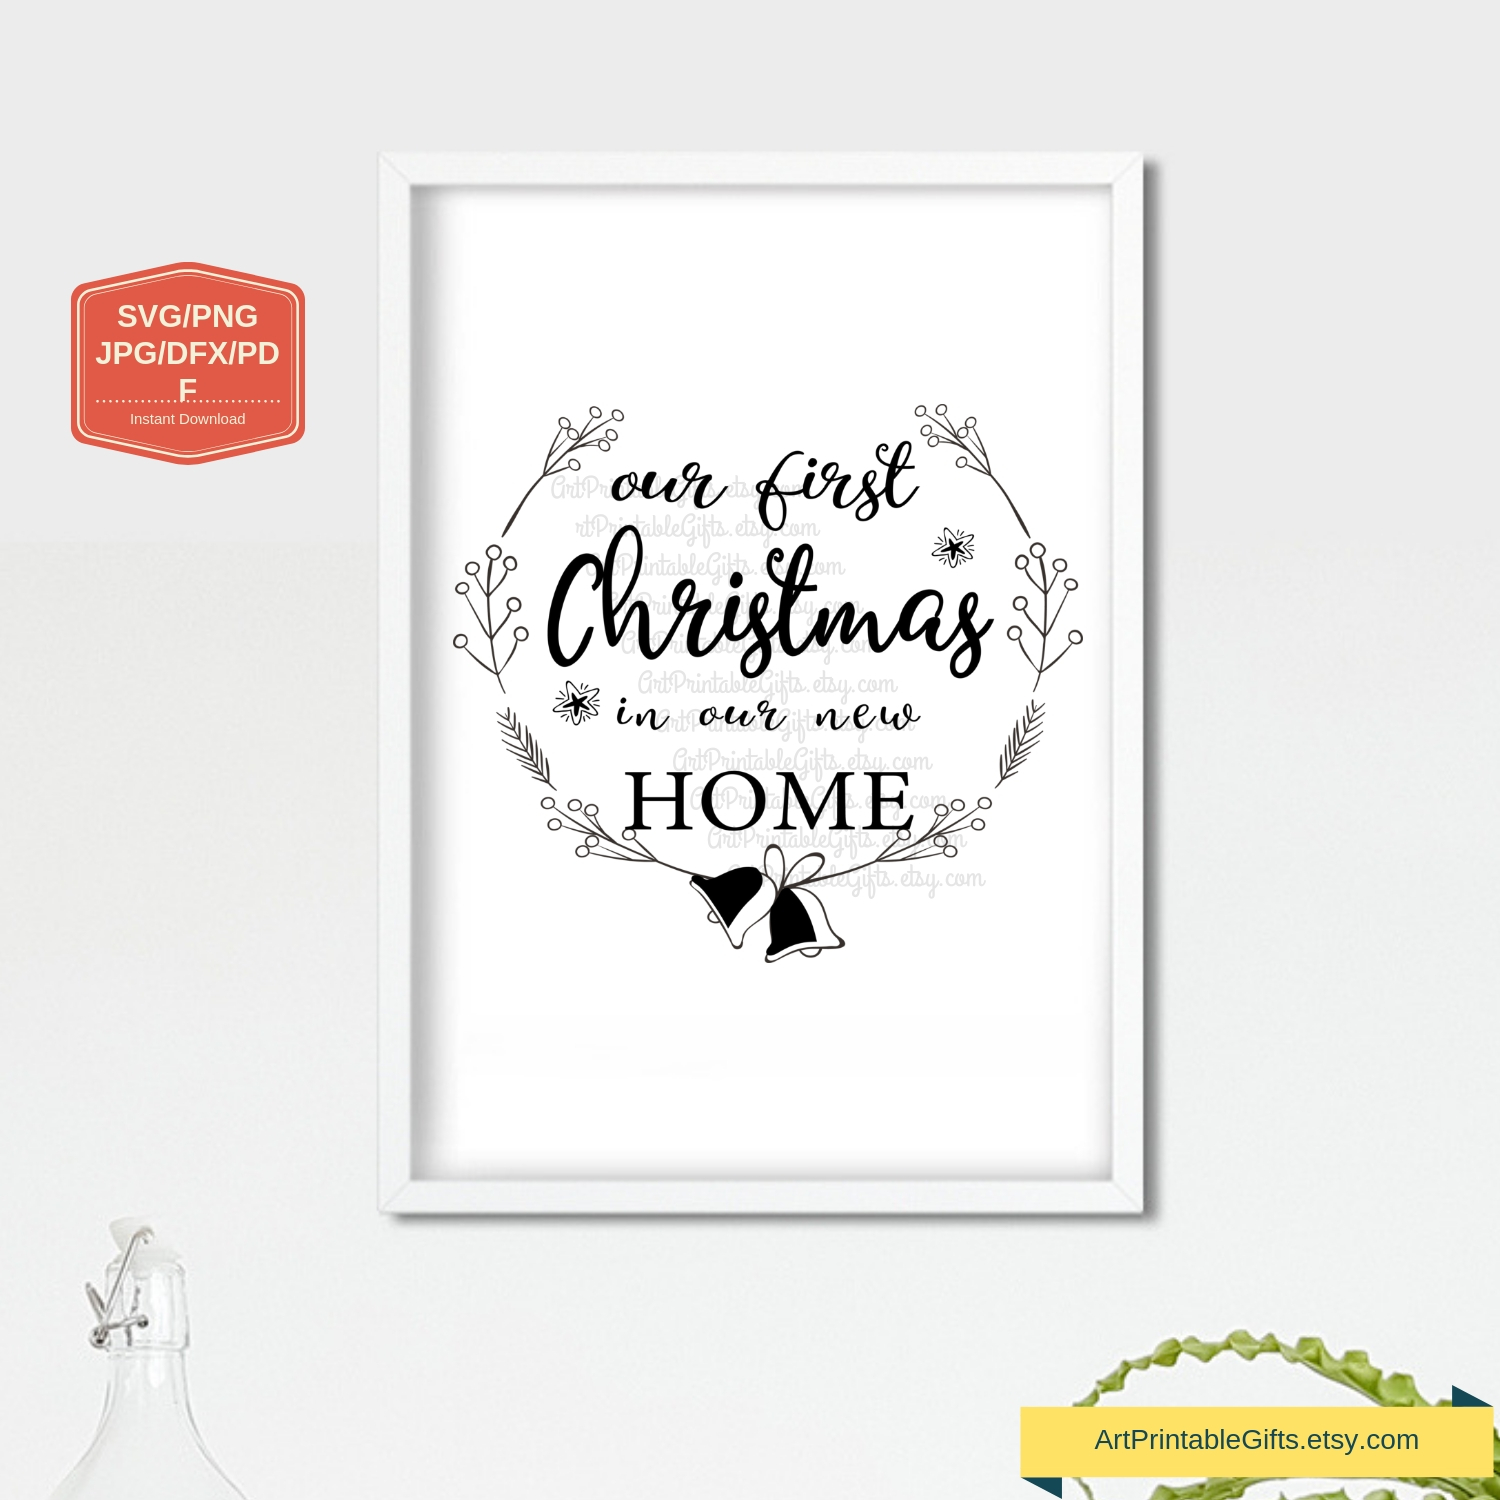 First Christmas In Our New Home Svg.Our First Christmas In Our New Home Svg File Png Jpg Dxf